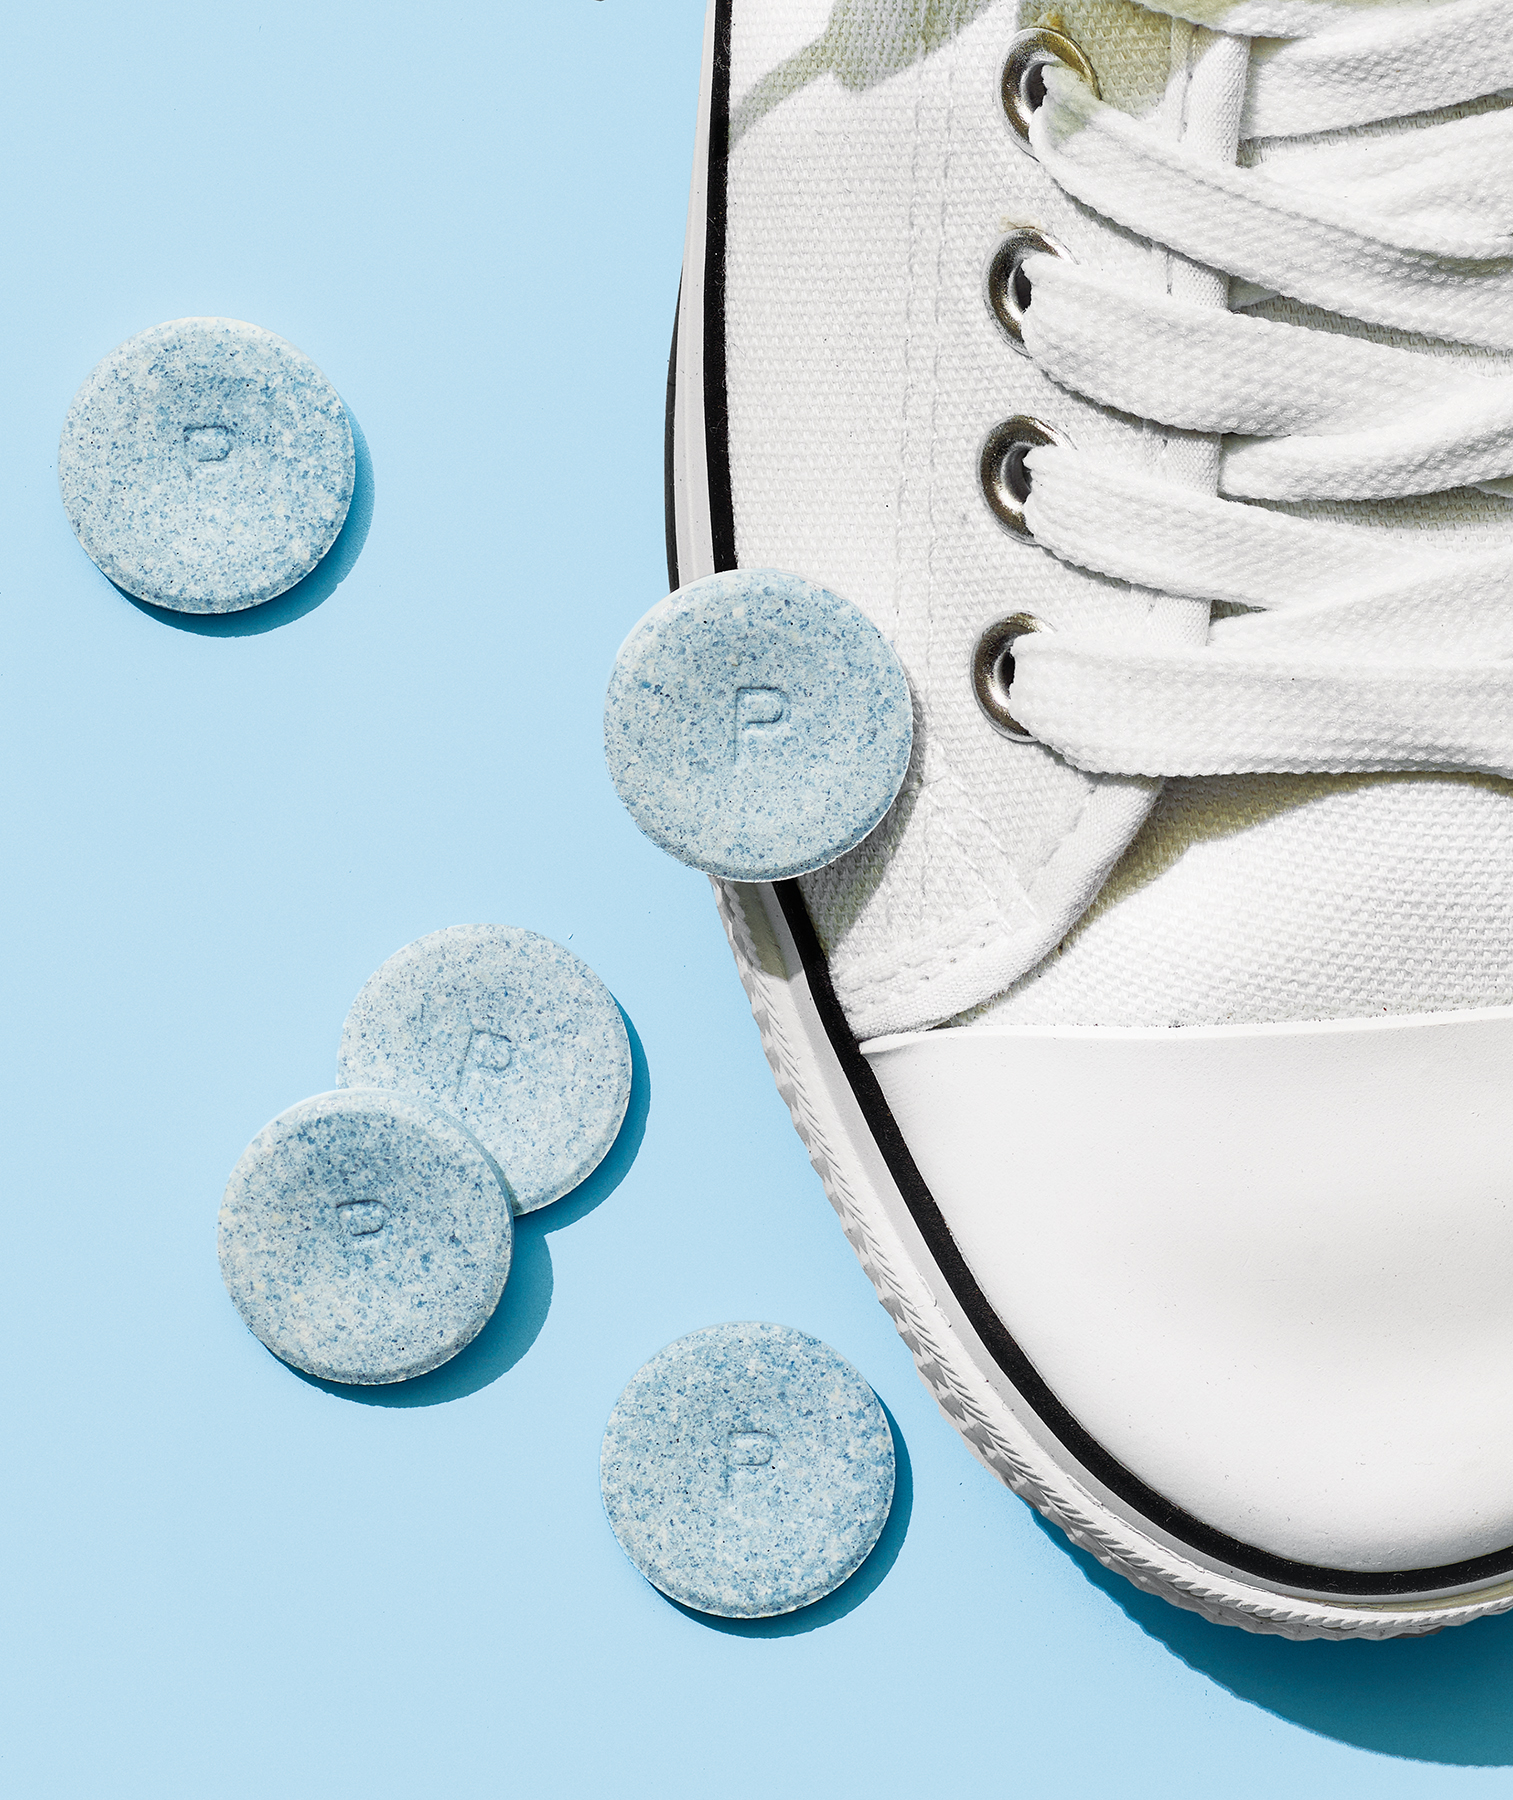 Denture tabs and white sneakers